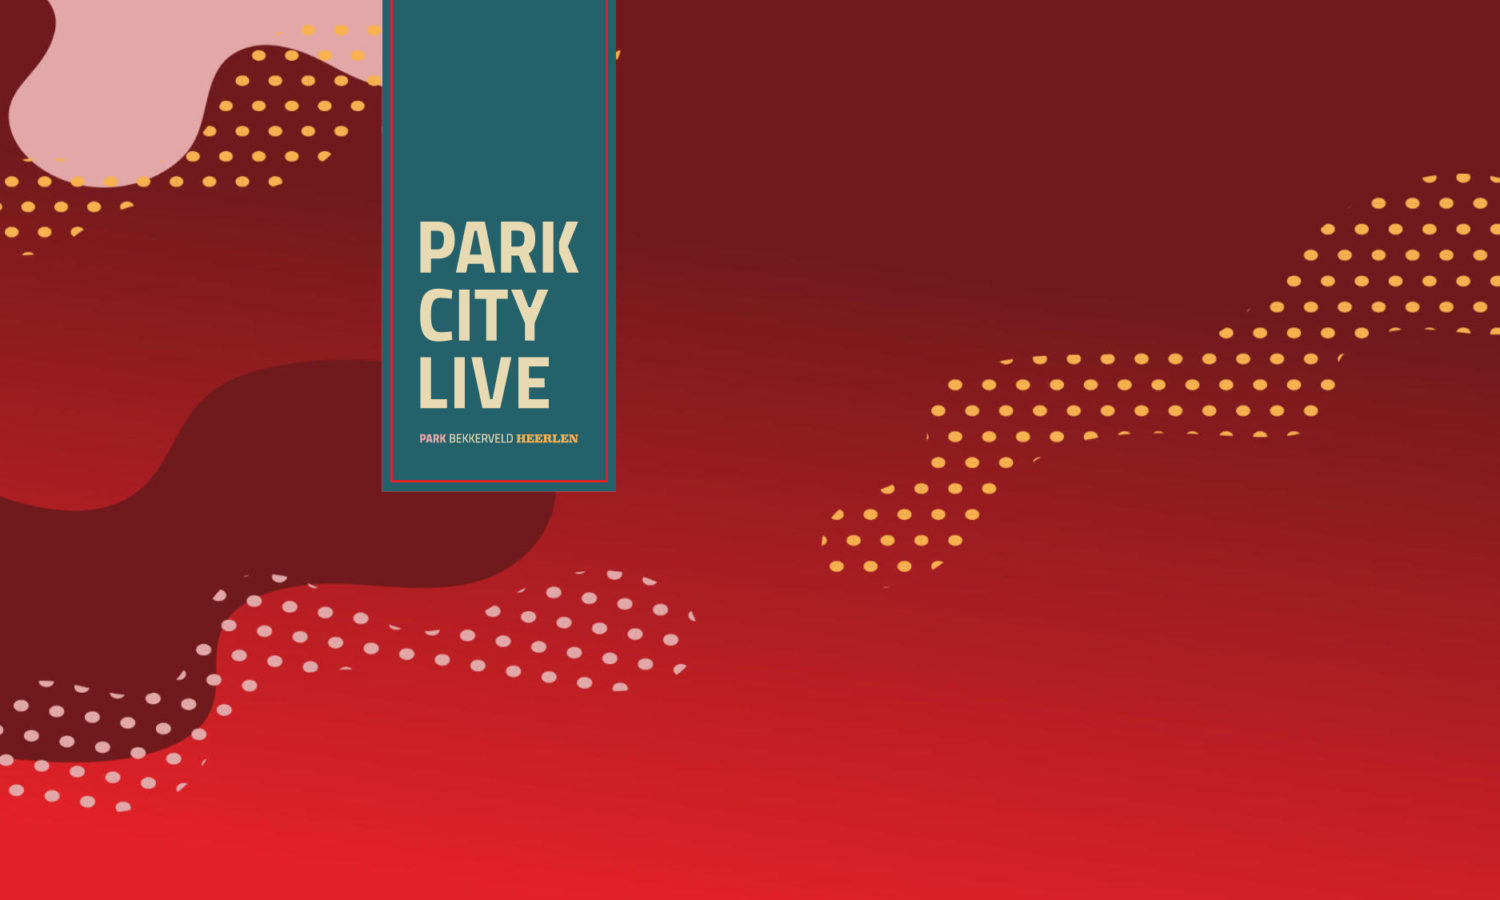 Park City Live Festival Within Temptation